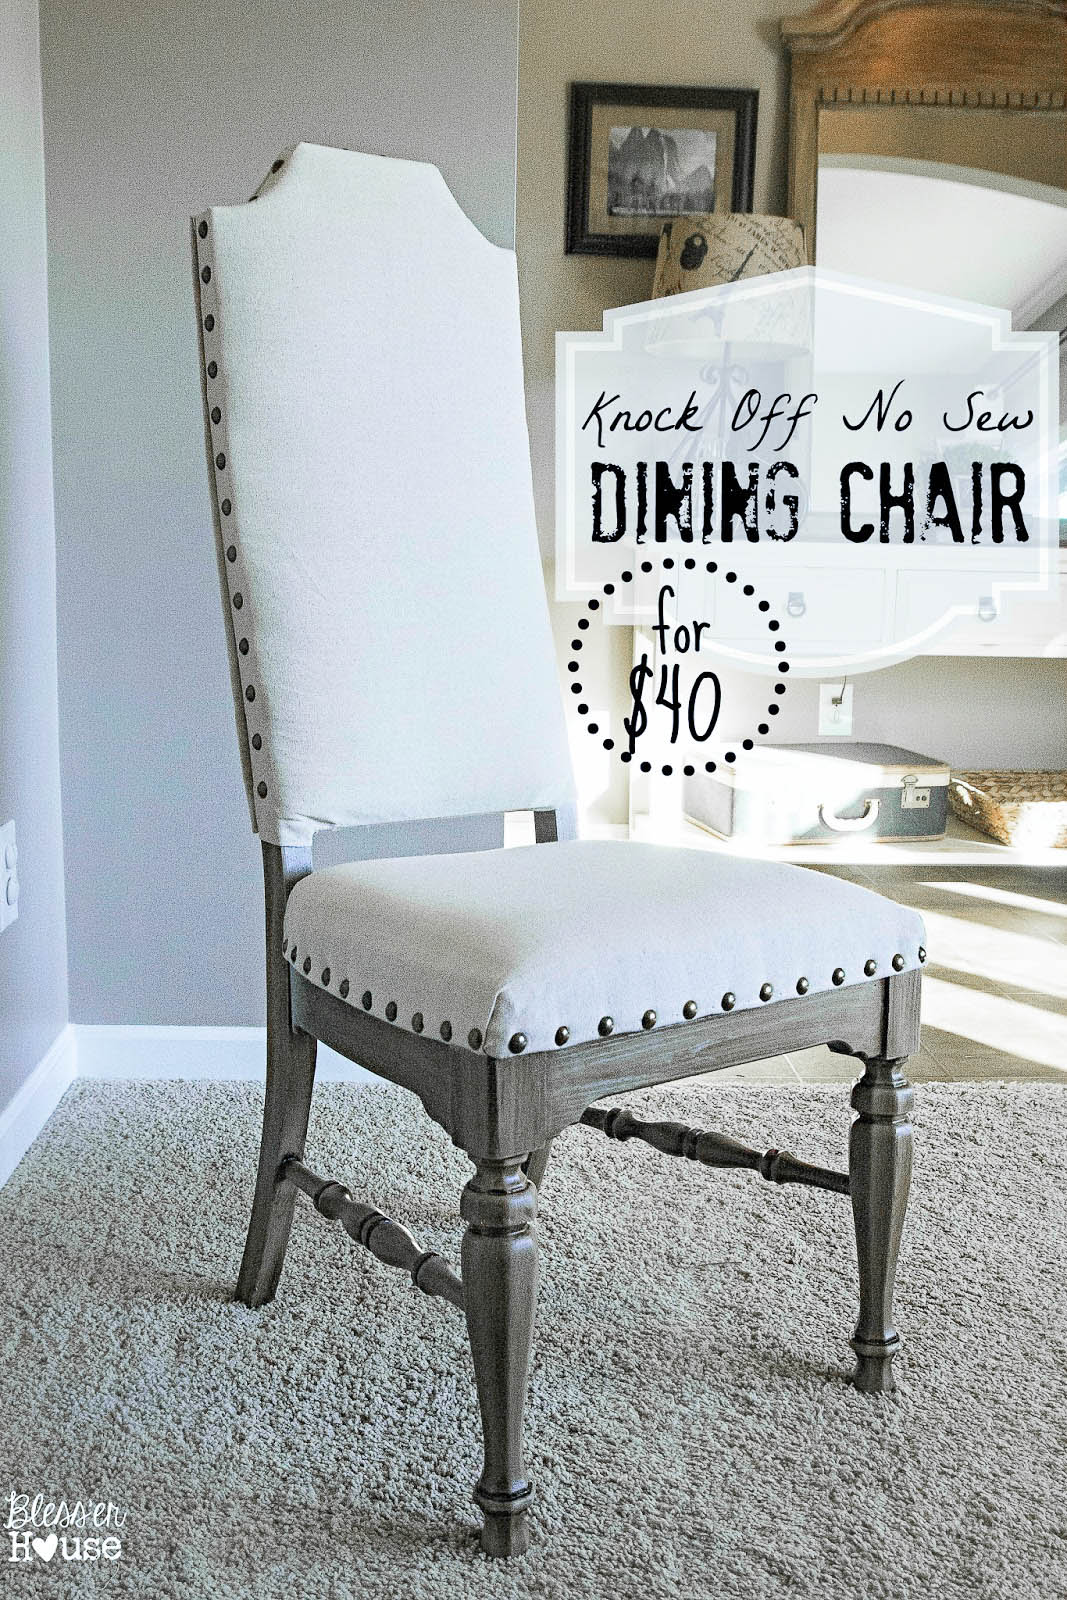 Diy Upholstered Dining Chairs knock off no sew dining chairs - bless'er house